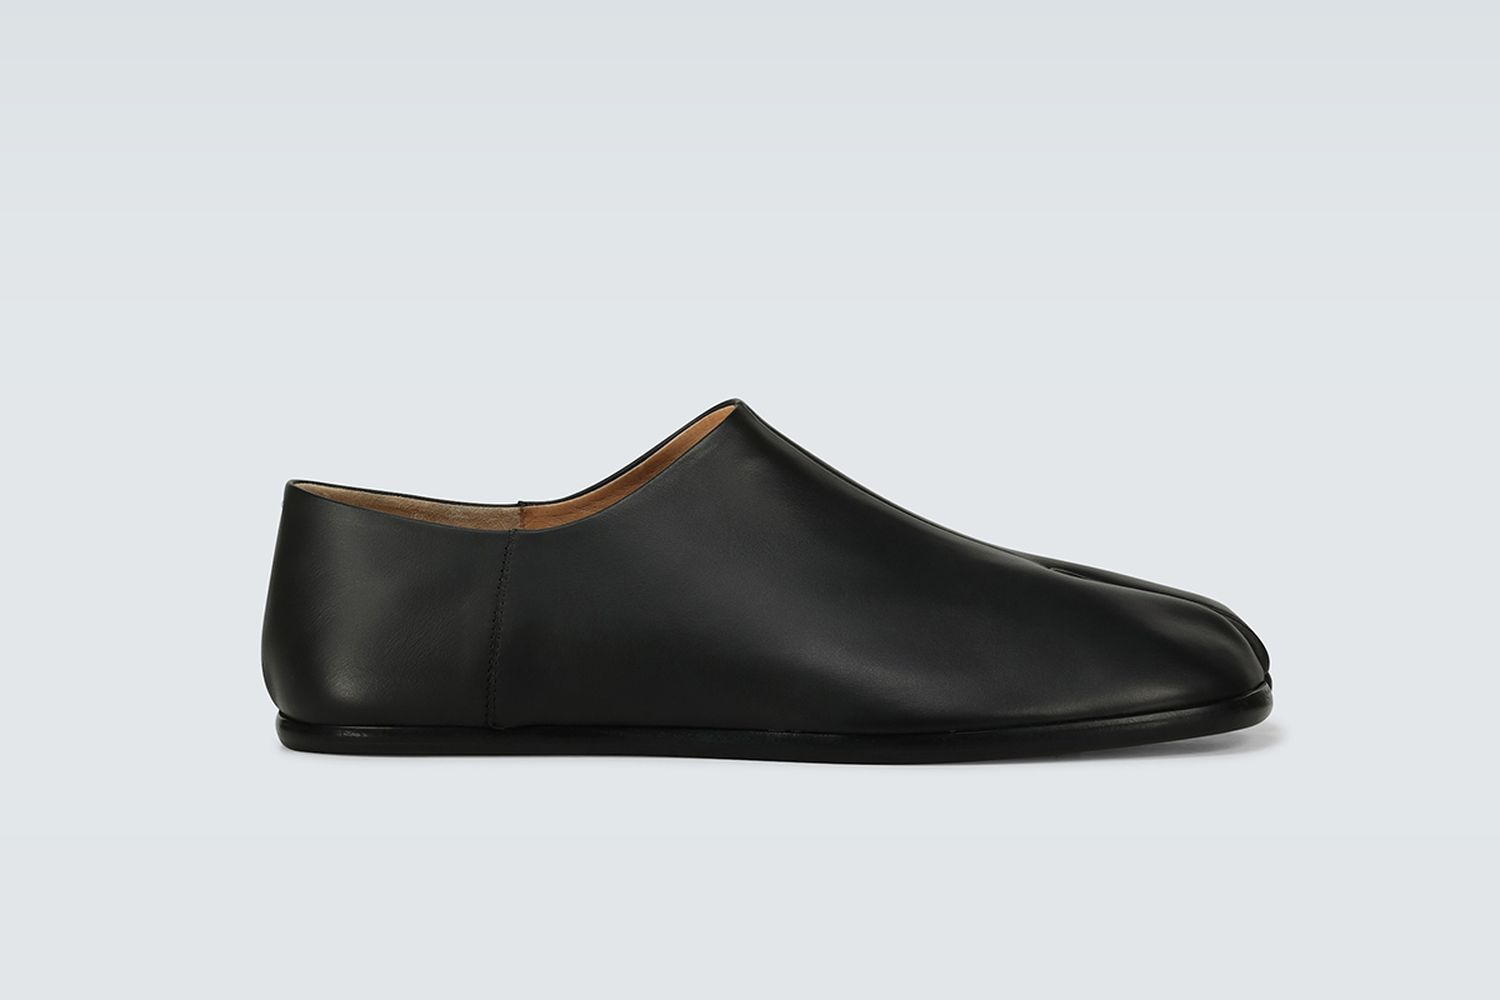 Tabi Babouche Leather Loafers